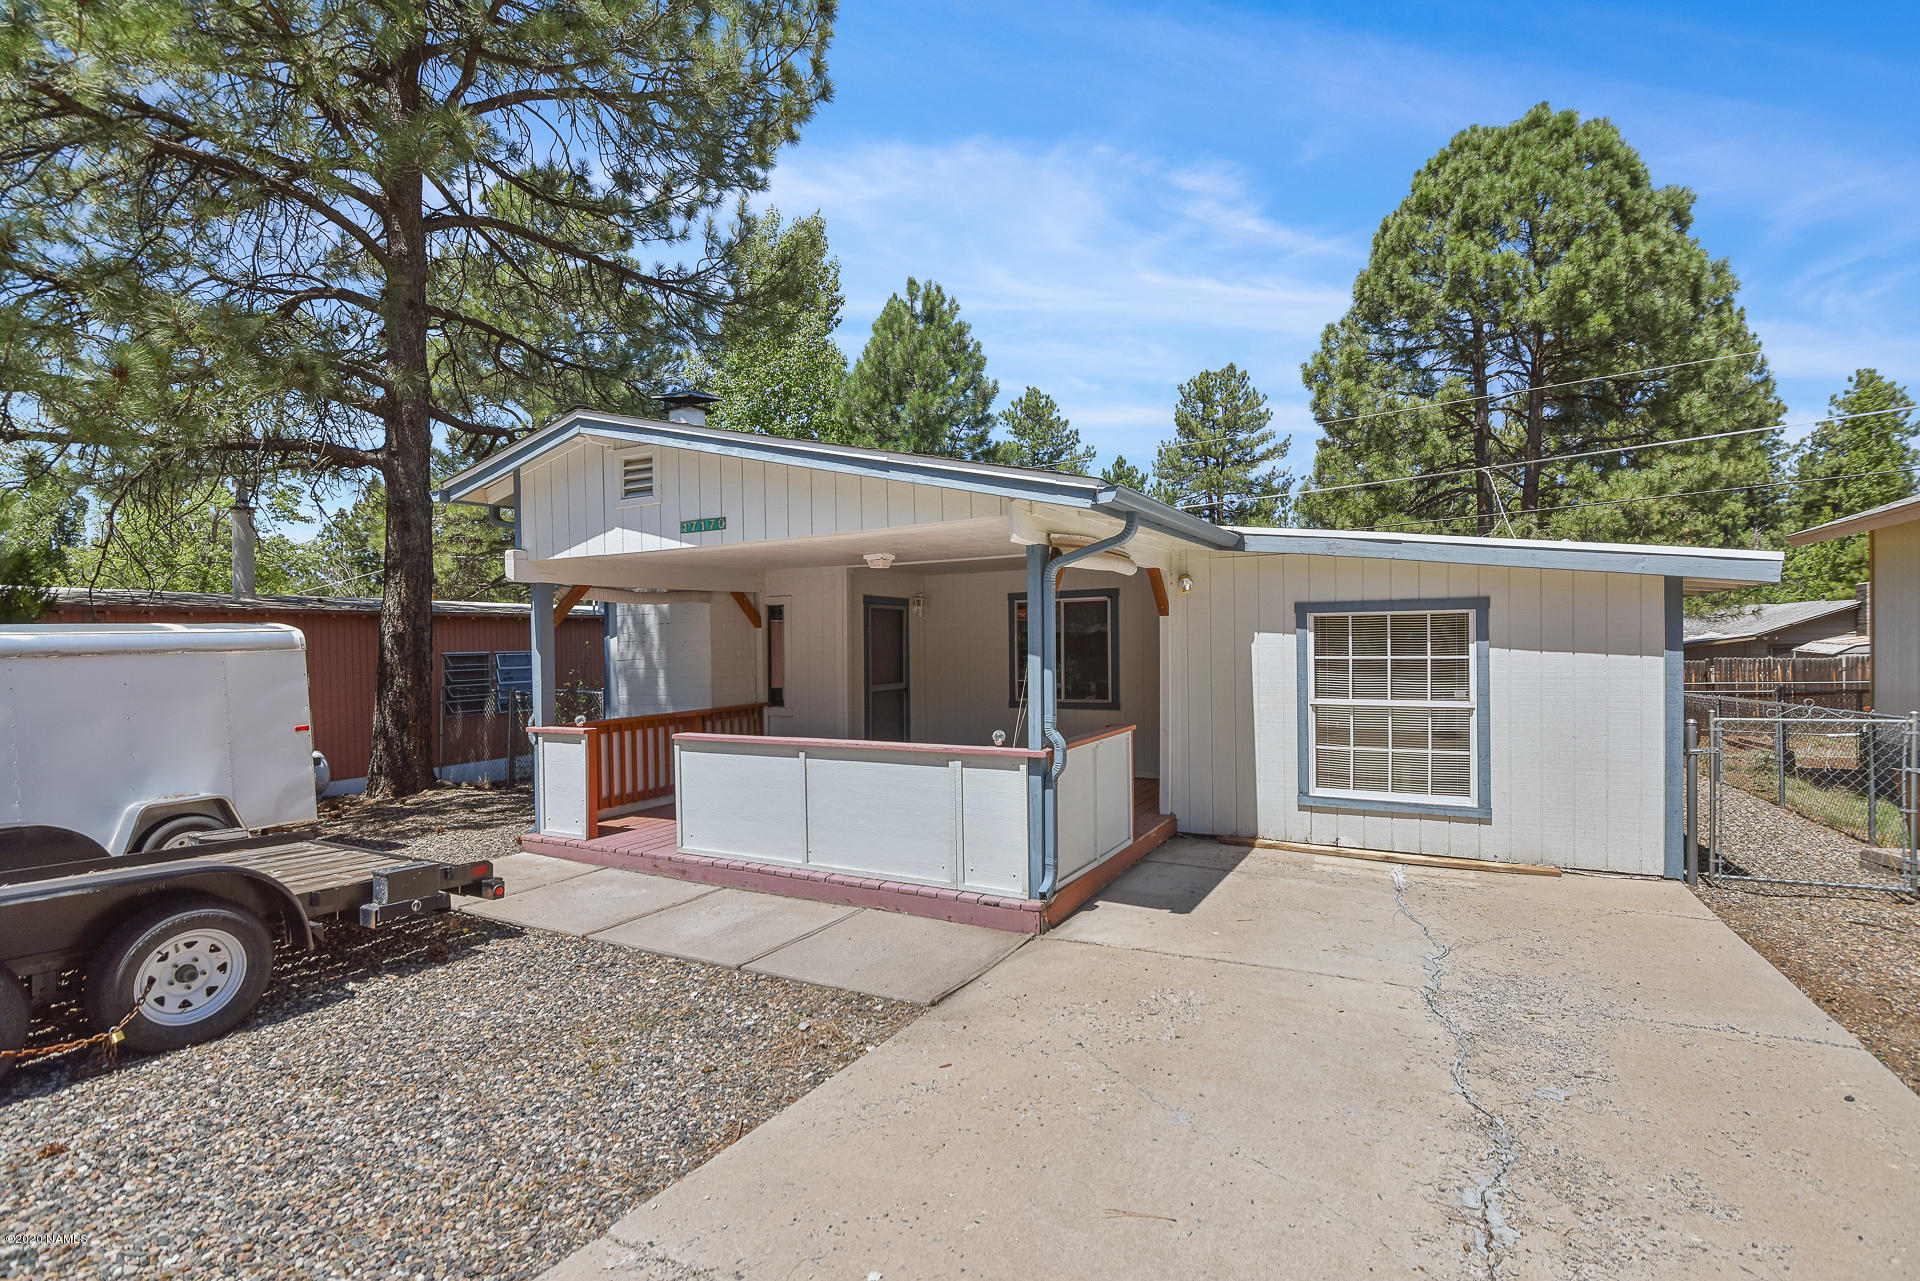 Photo of 17170 Deer Run Road, Munds Park, AZ 86017